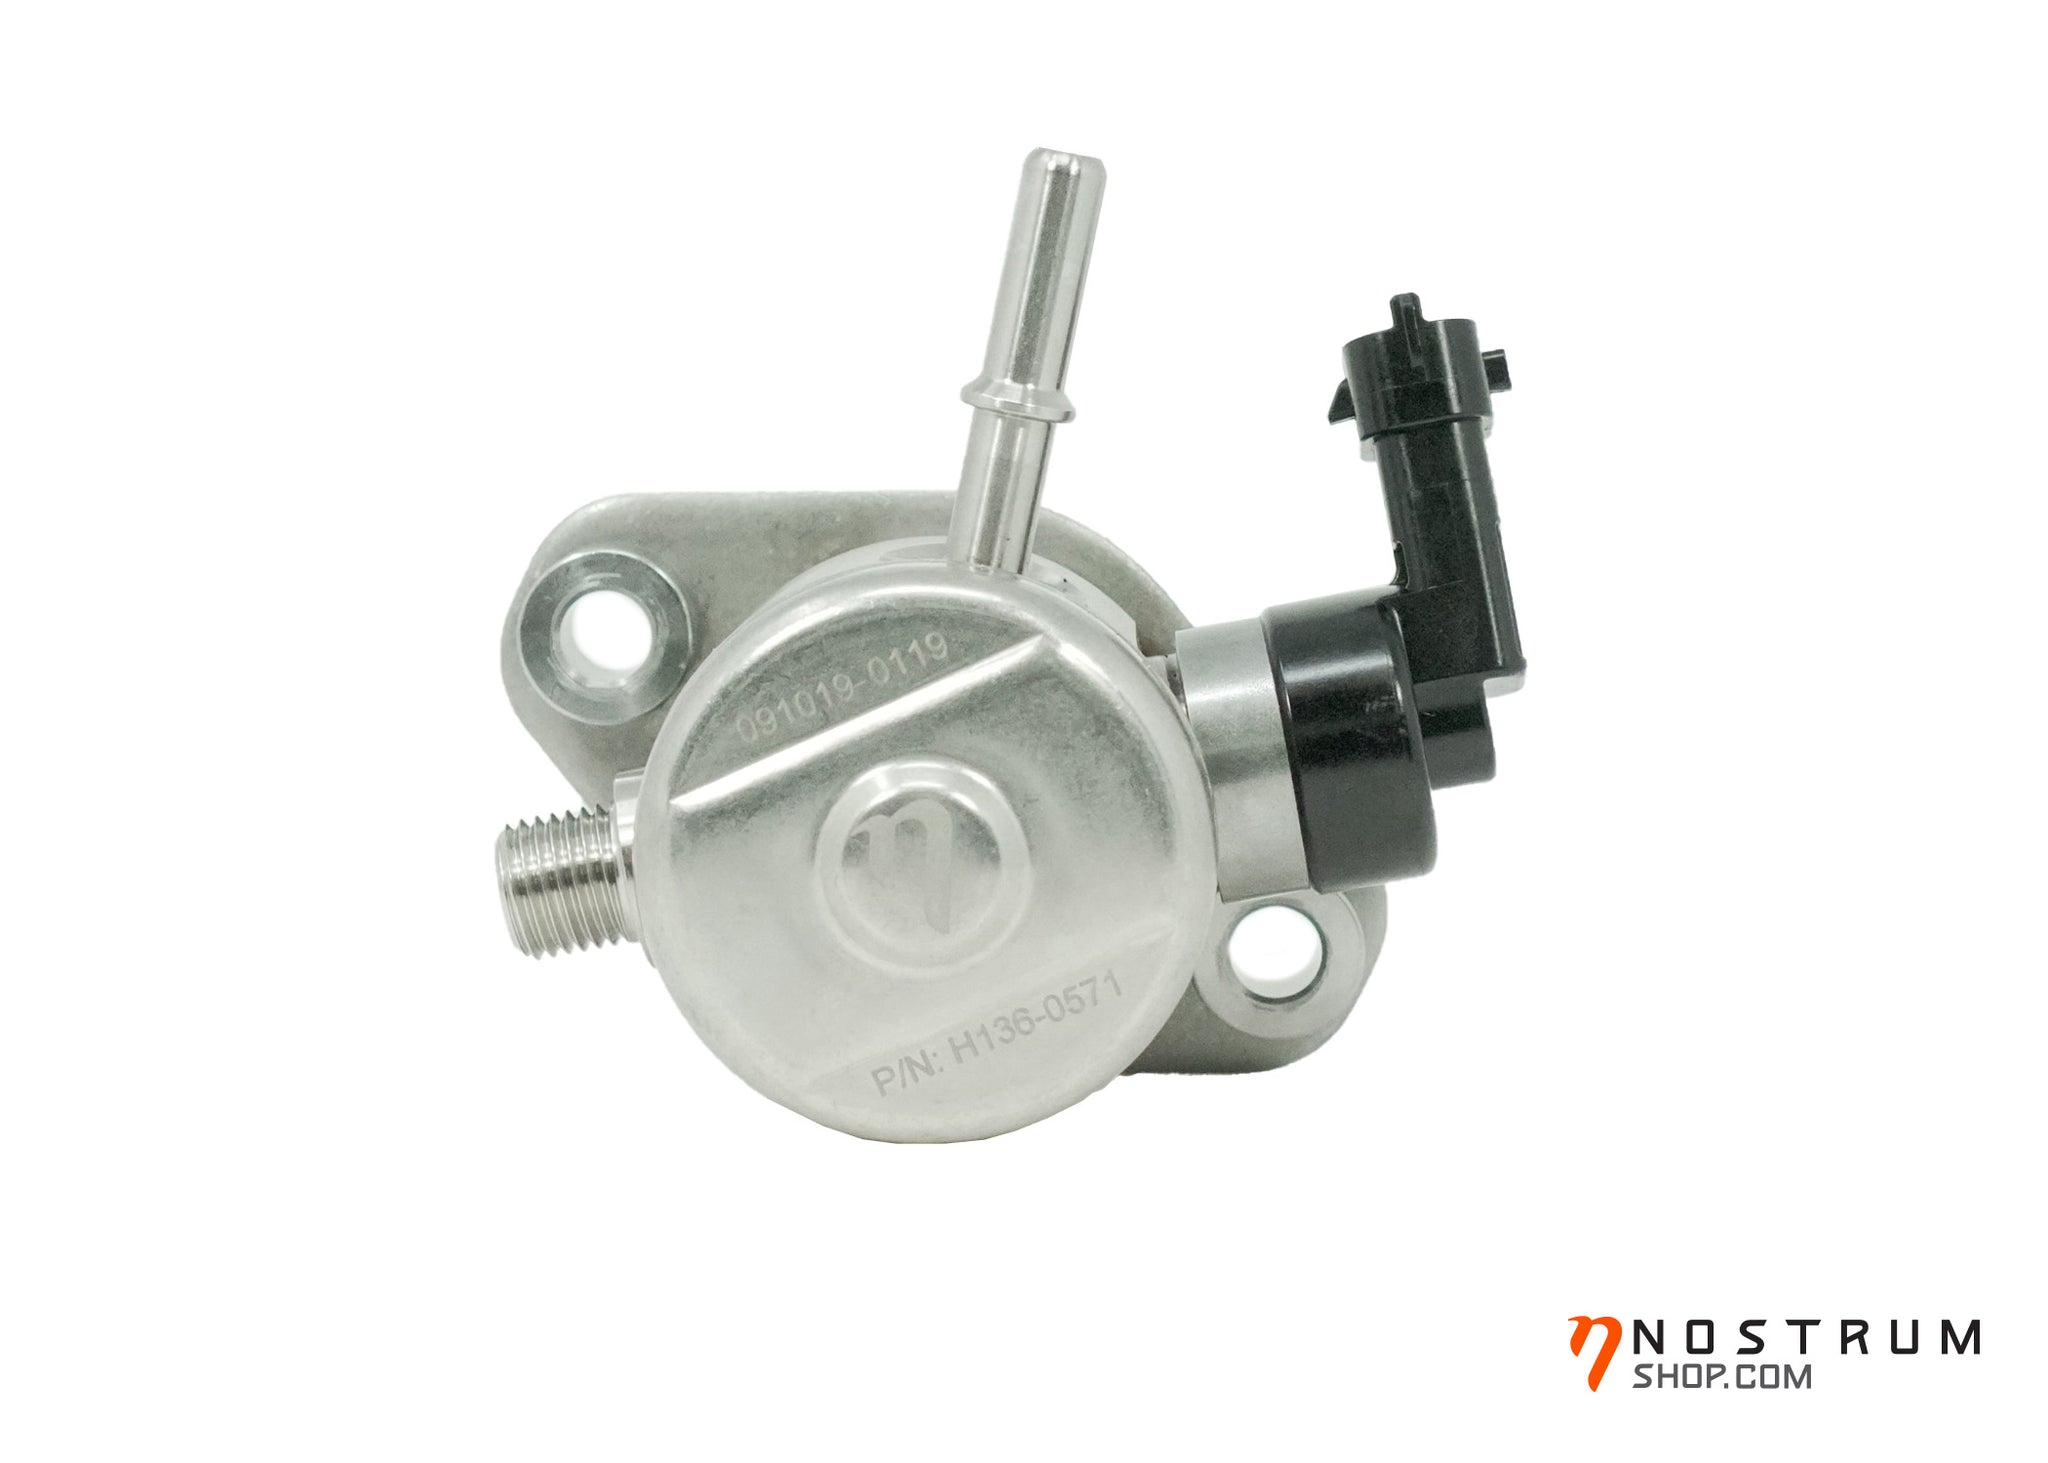 Nostrum High Performance High Pressure Fuel Pump - Subaru WRX 2015+